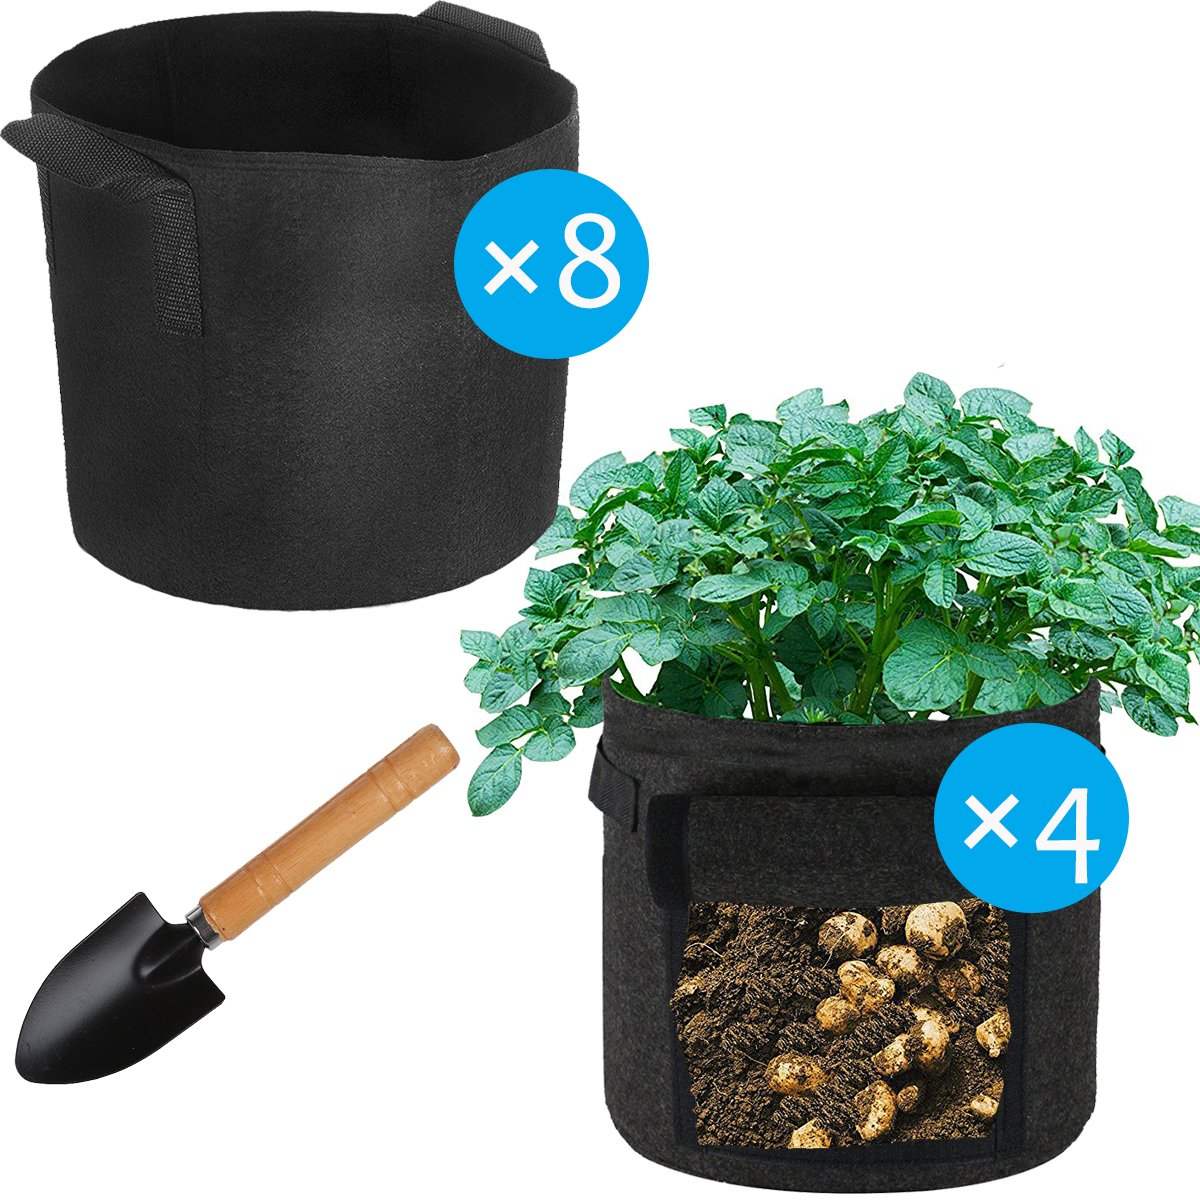 SunKoda Grow Bags 8 Pack 5 Gallon Fabric Pots 4 Pack 7 Gallon Potato Growing Bags Indoor Planter Pots for Outdoor Garden Tree, Flower, Bean, Tomato, Vegetable Planting